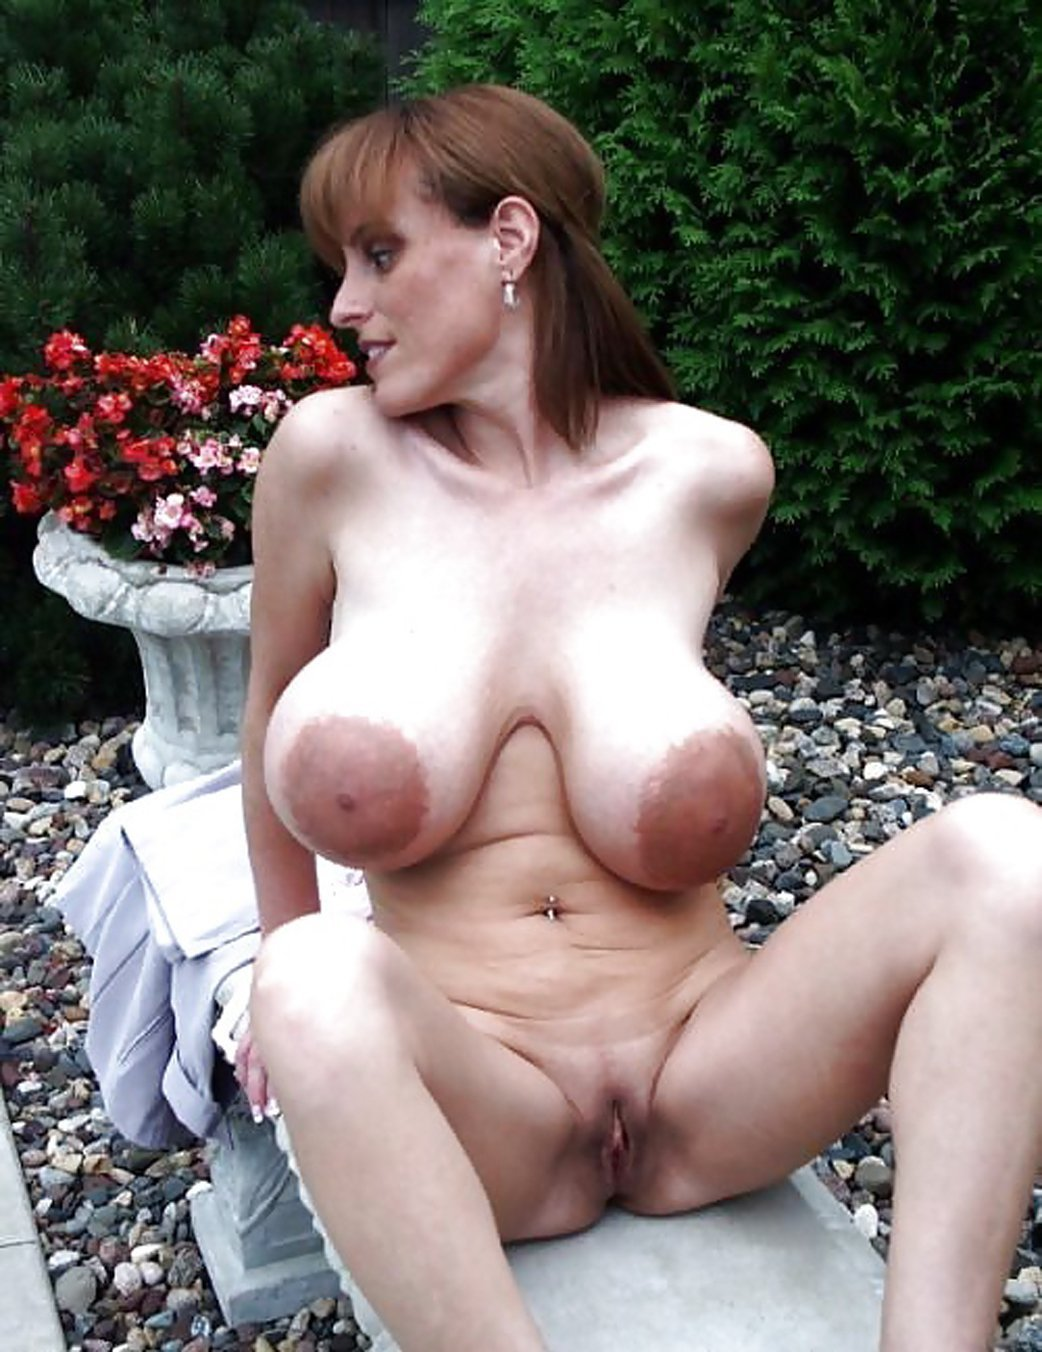 Elegant mature blonde teasing with her saggy boobs